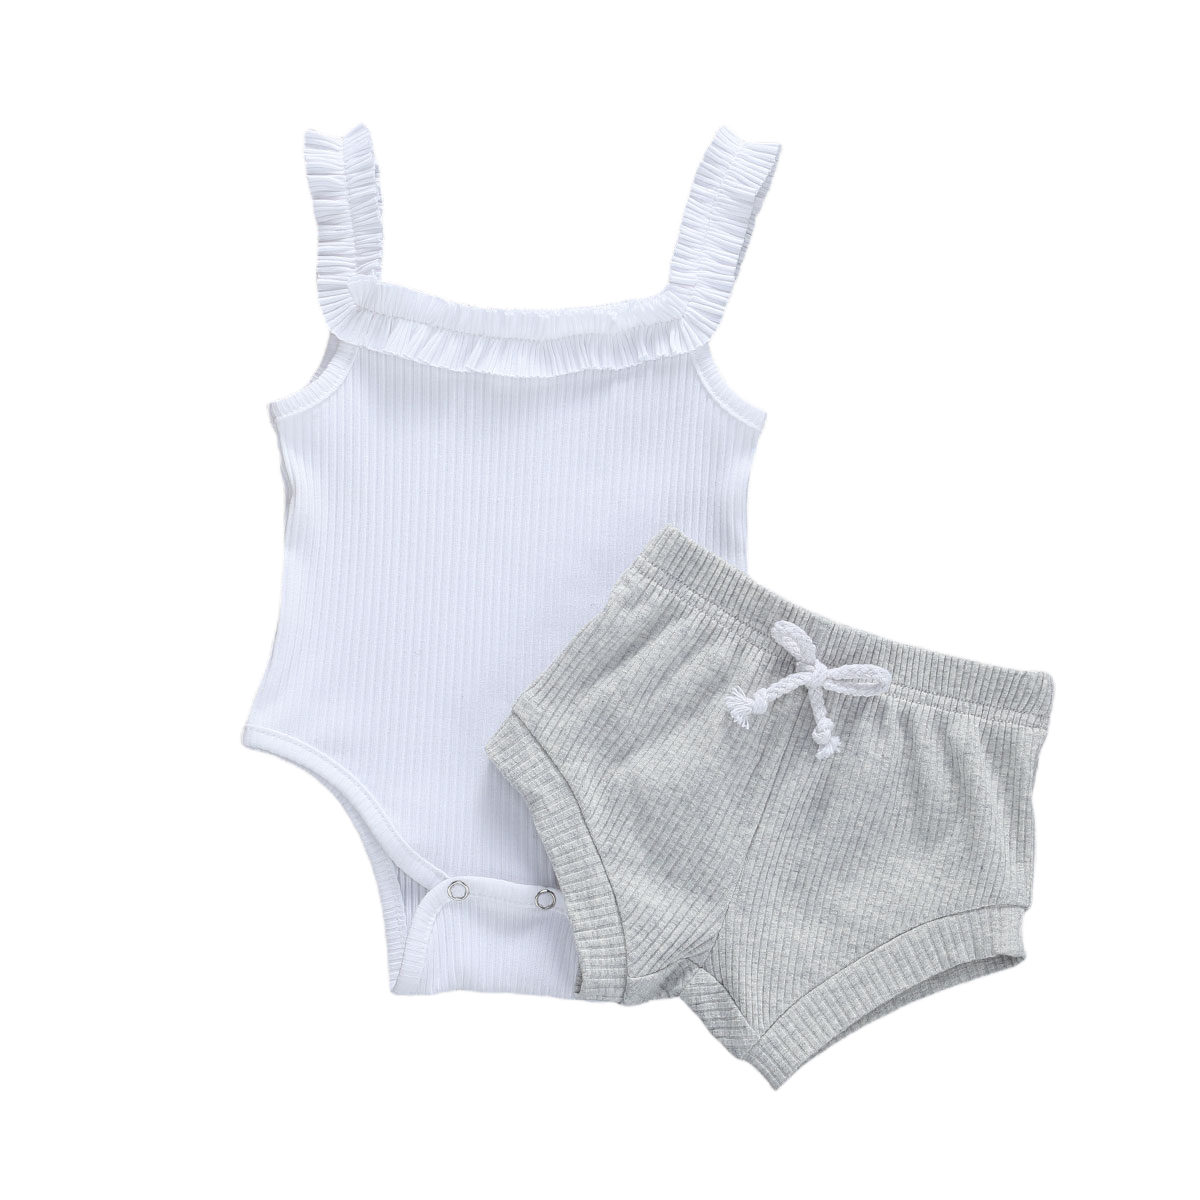 Toddler Baby Girl Summer Outfits White Halter Button Crop Top+Elastic Shorts Pants 3Pcs Clothes Set